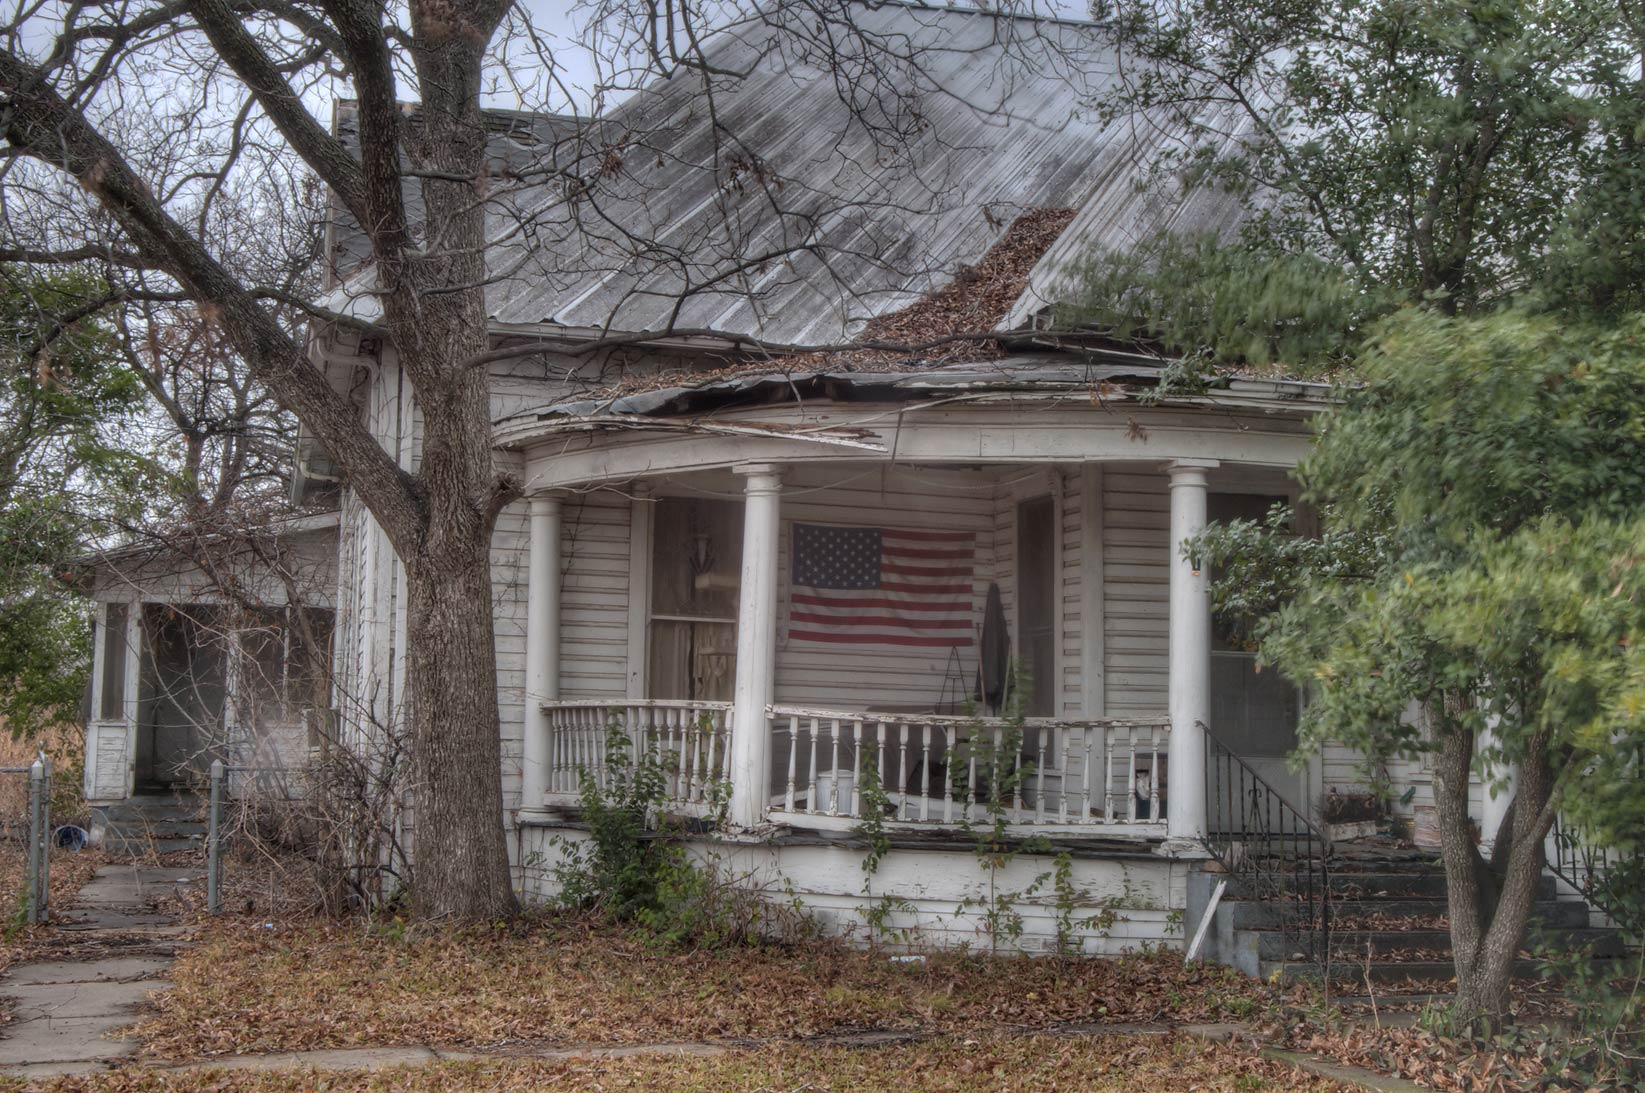 Photo 902 19 Old House At Rd 320 Gassaway A Corner Of